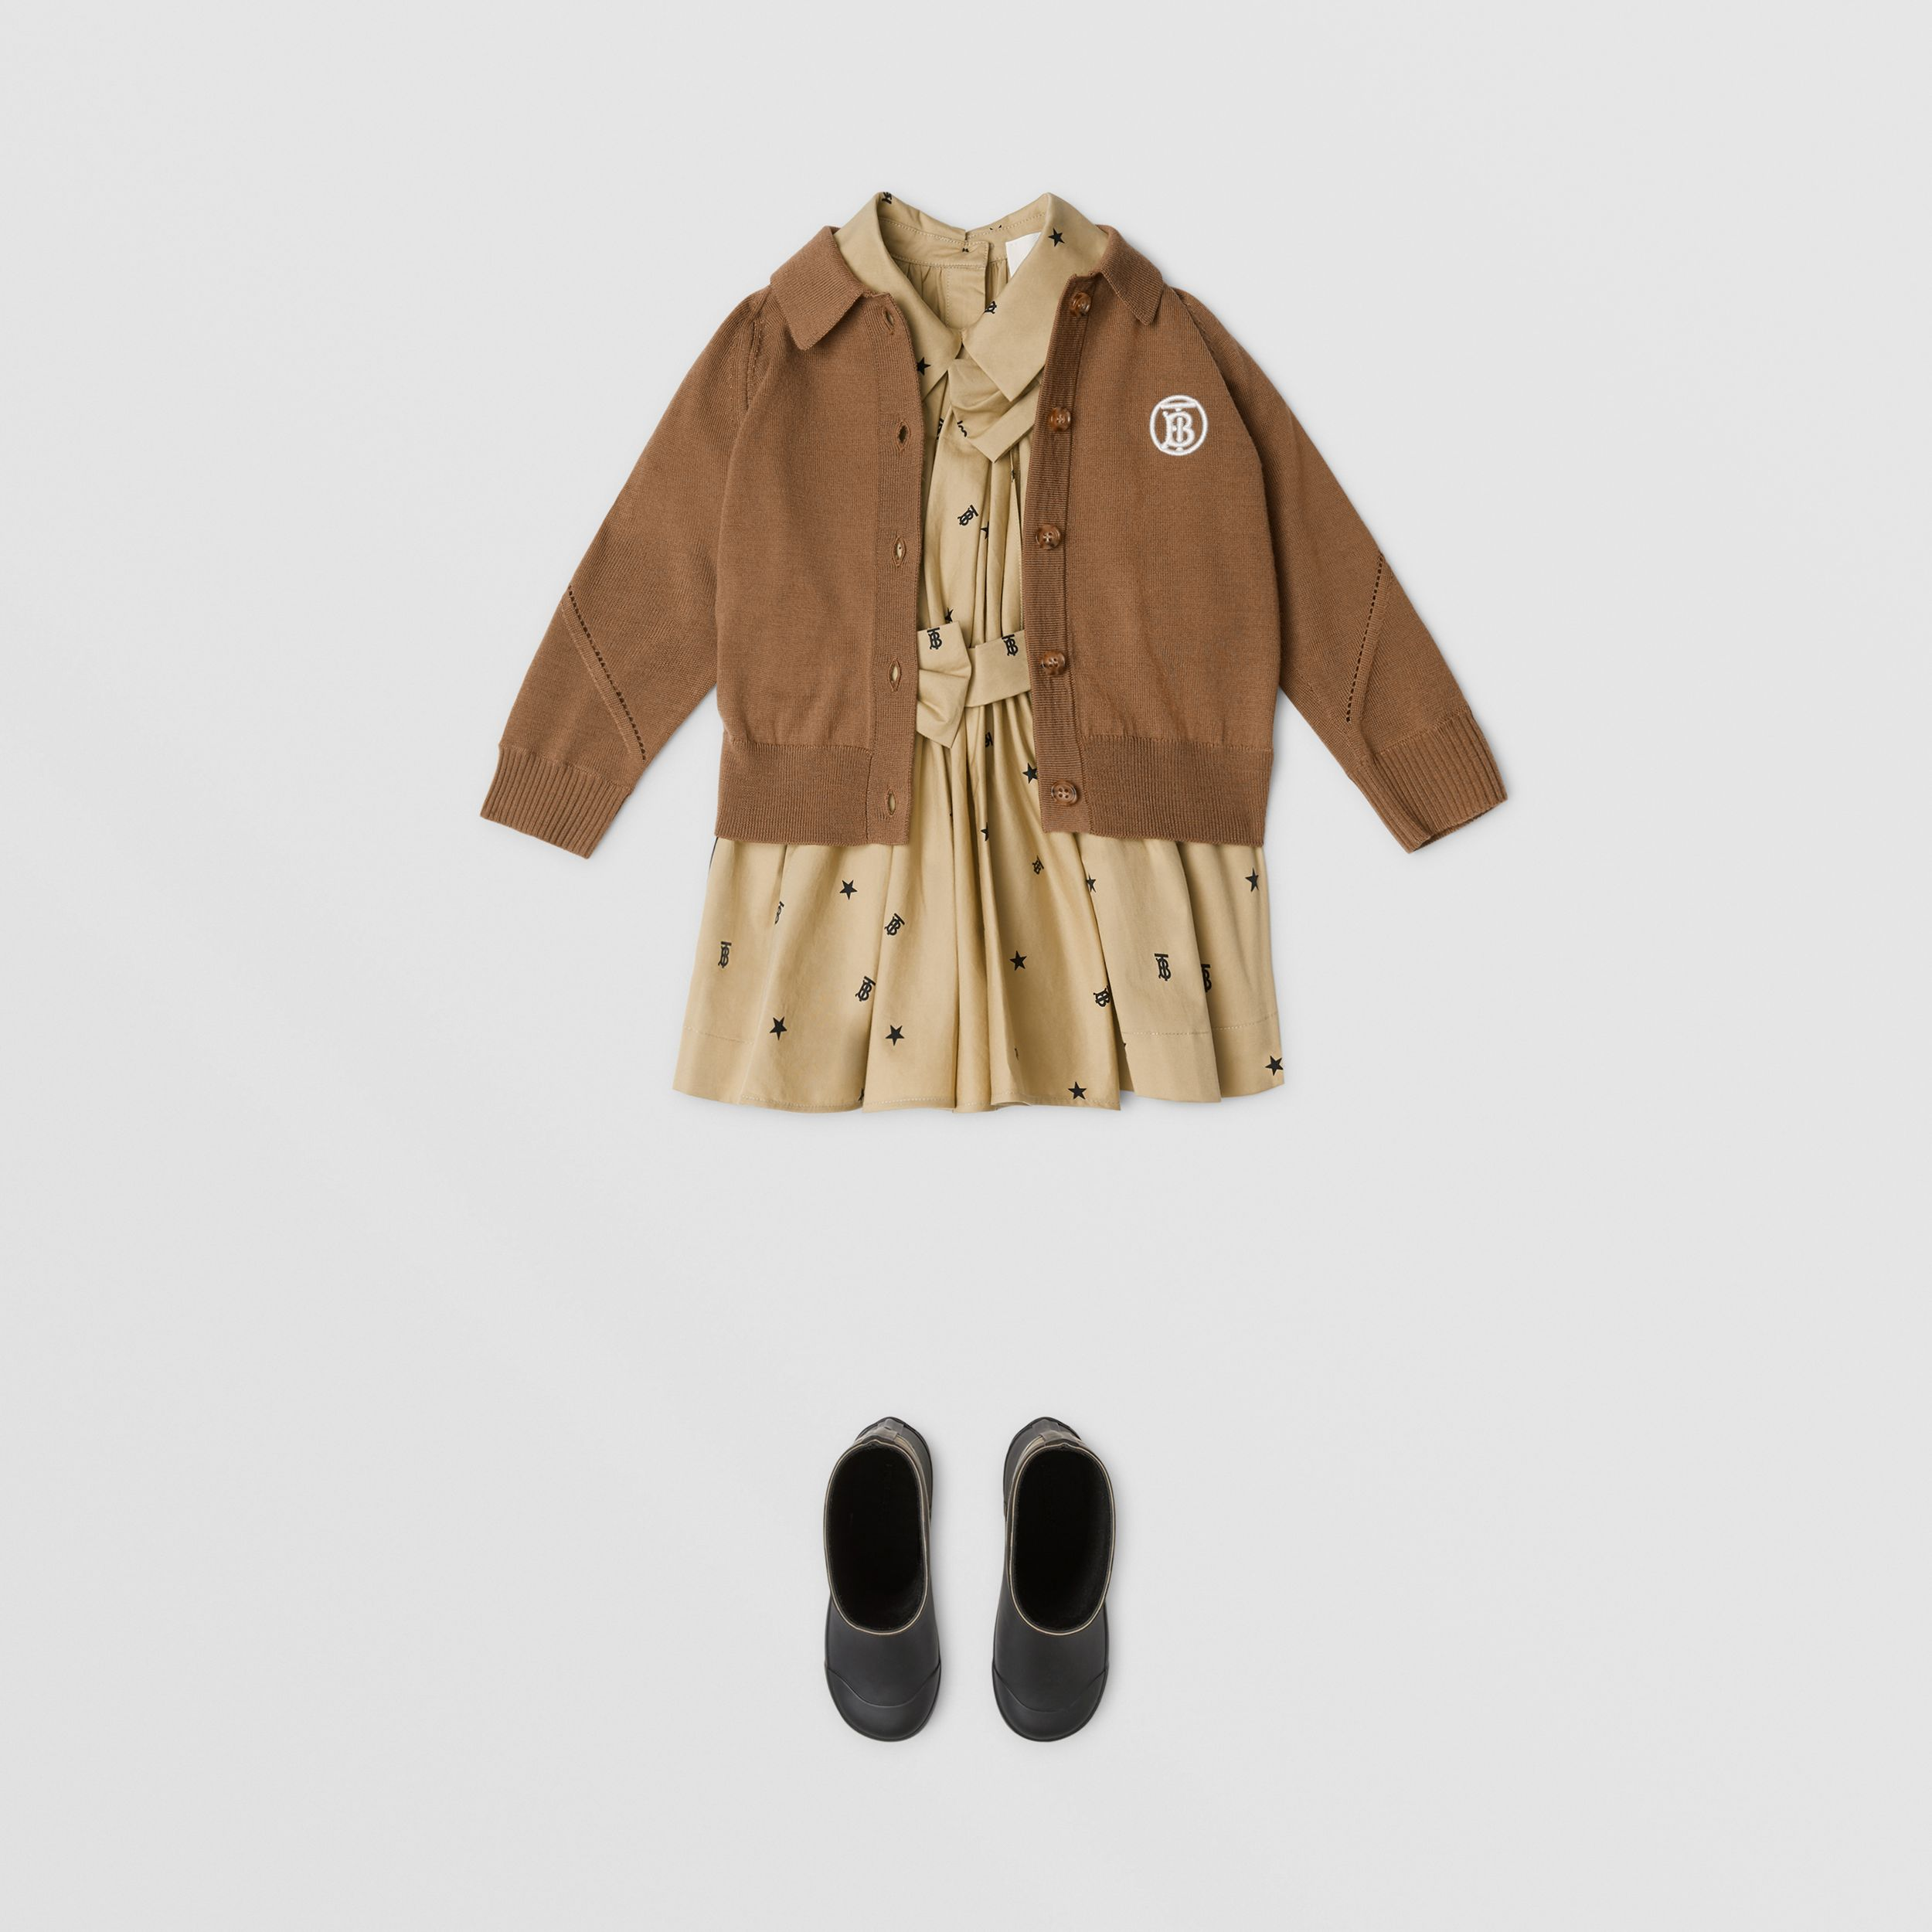 Monogram Motif Merino Wool Cardigan in Oak Brown - Children | Burberry - 3